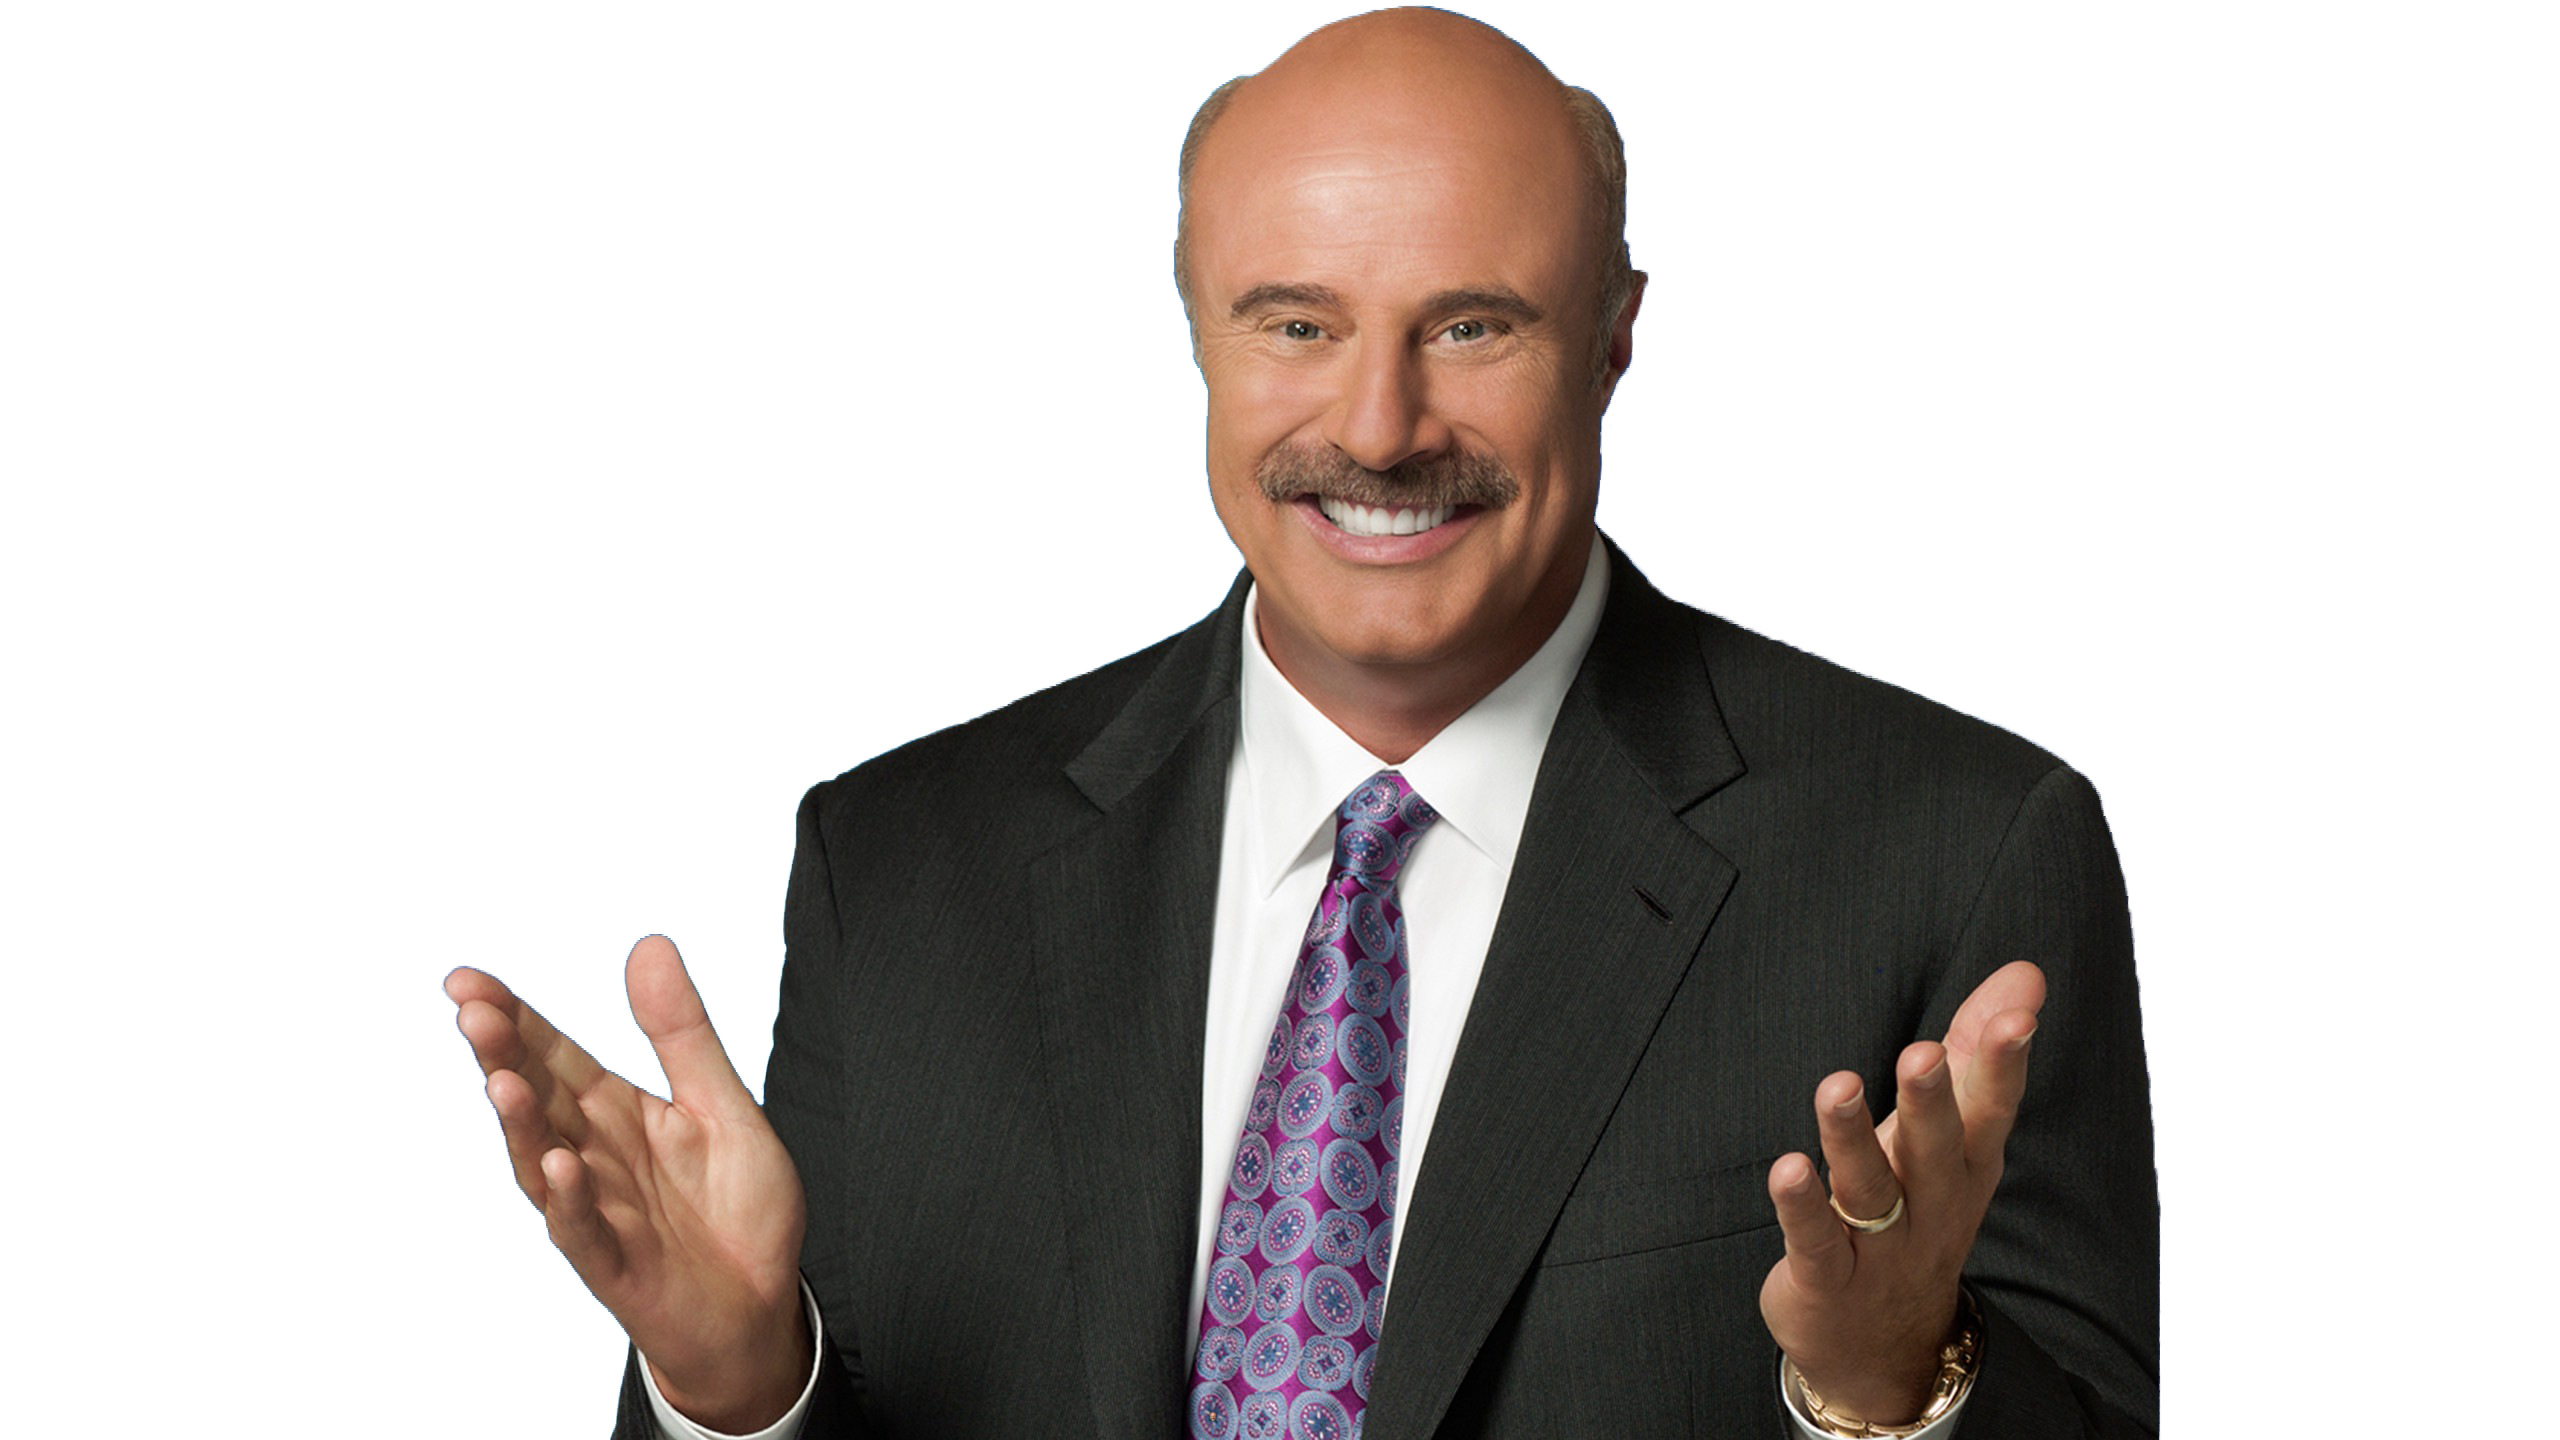 Dr Phil Smiling